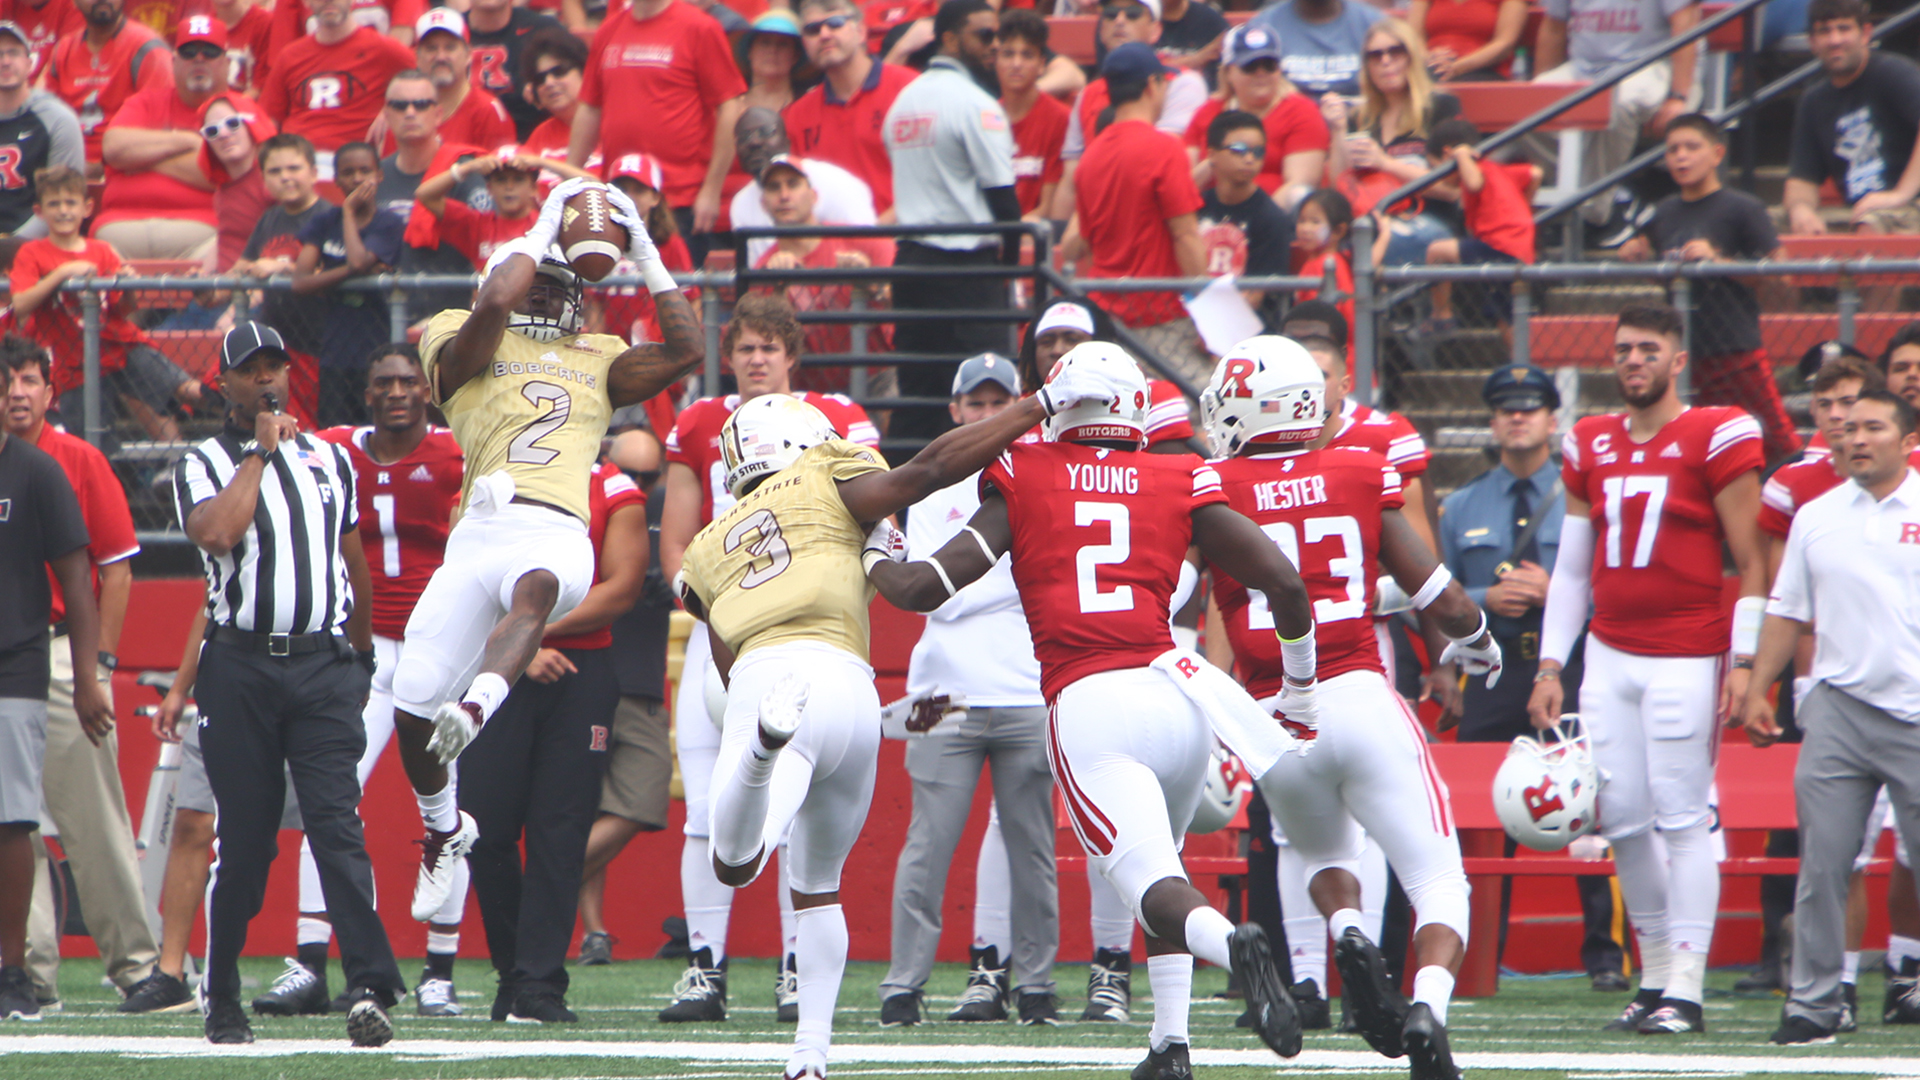 Texas State University's wide reciever Jah'Marae Sheread hauls in a 23-yard pass against the Rutgers